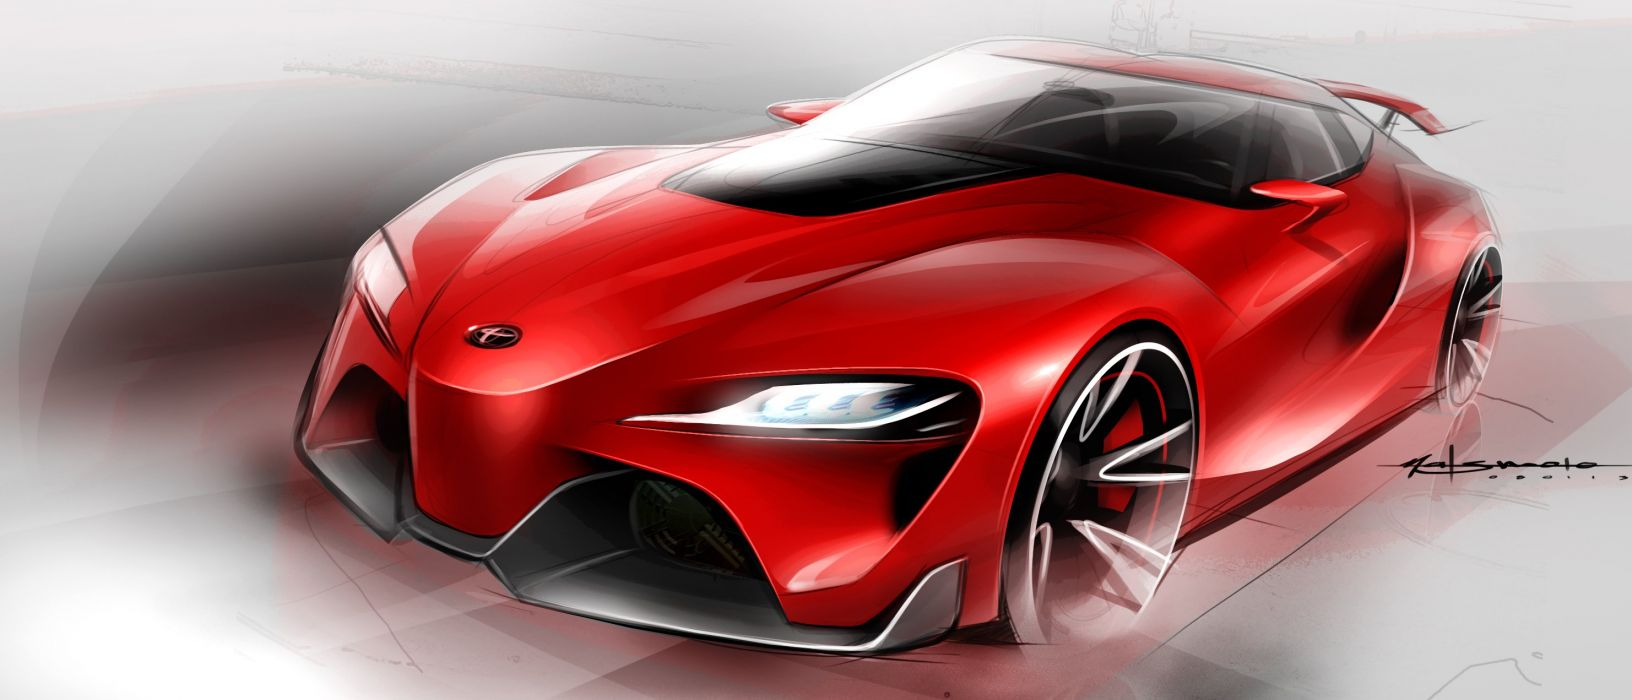 2014 Toyota FT-1 Concept supercar concept wallpaper